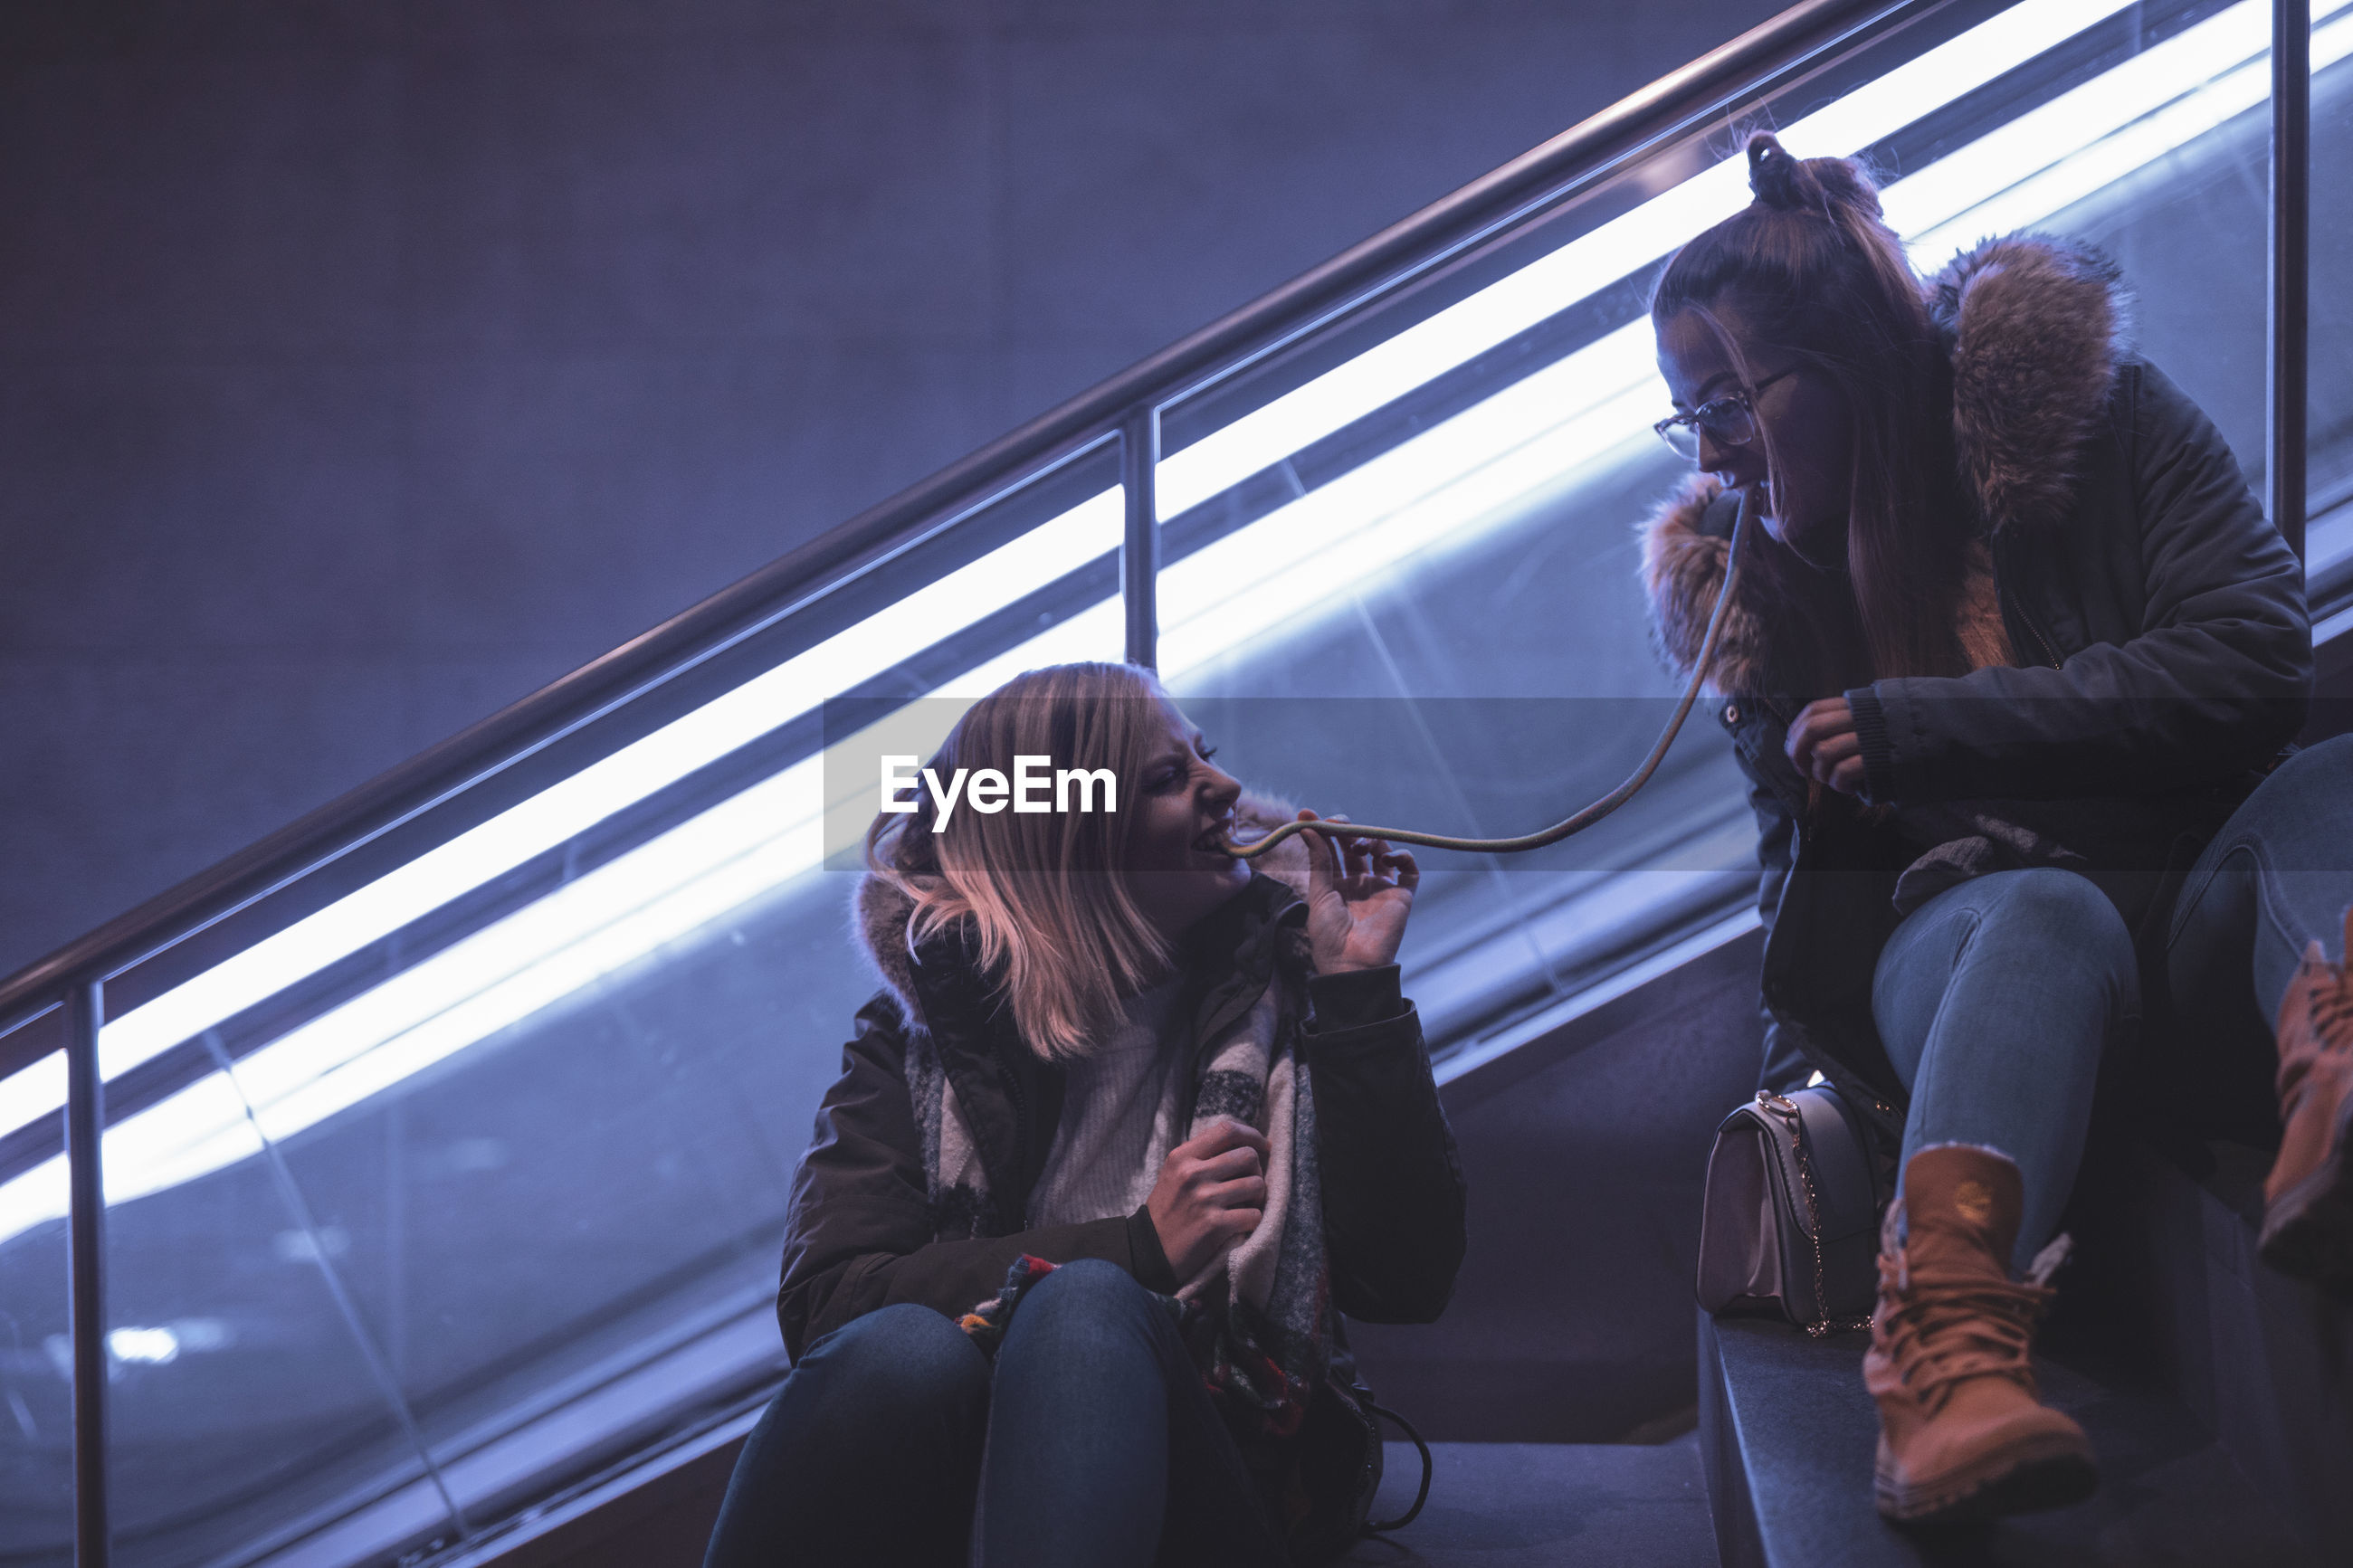 Female friends eating food while sitting on escalator